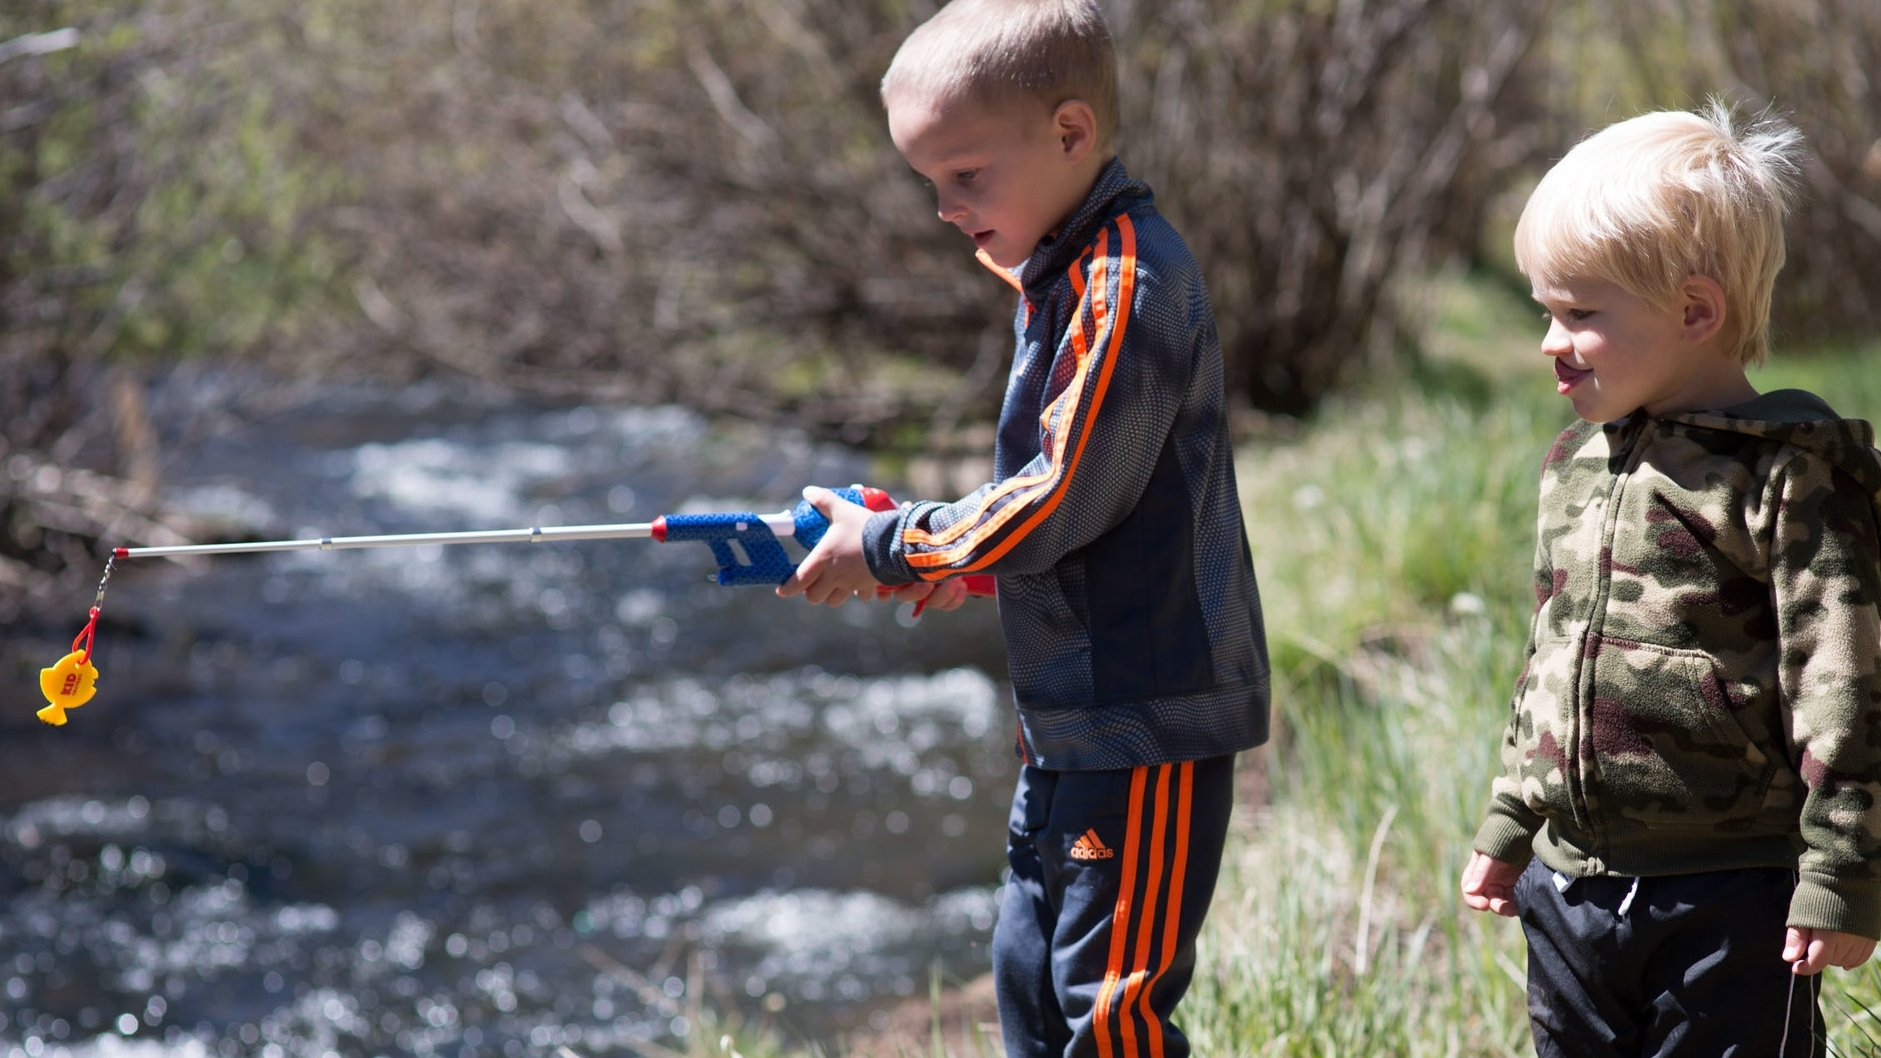 boys fishing in Little Colorado River.jpg